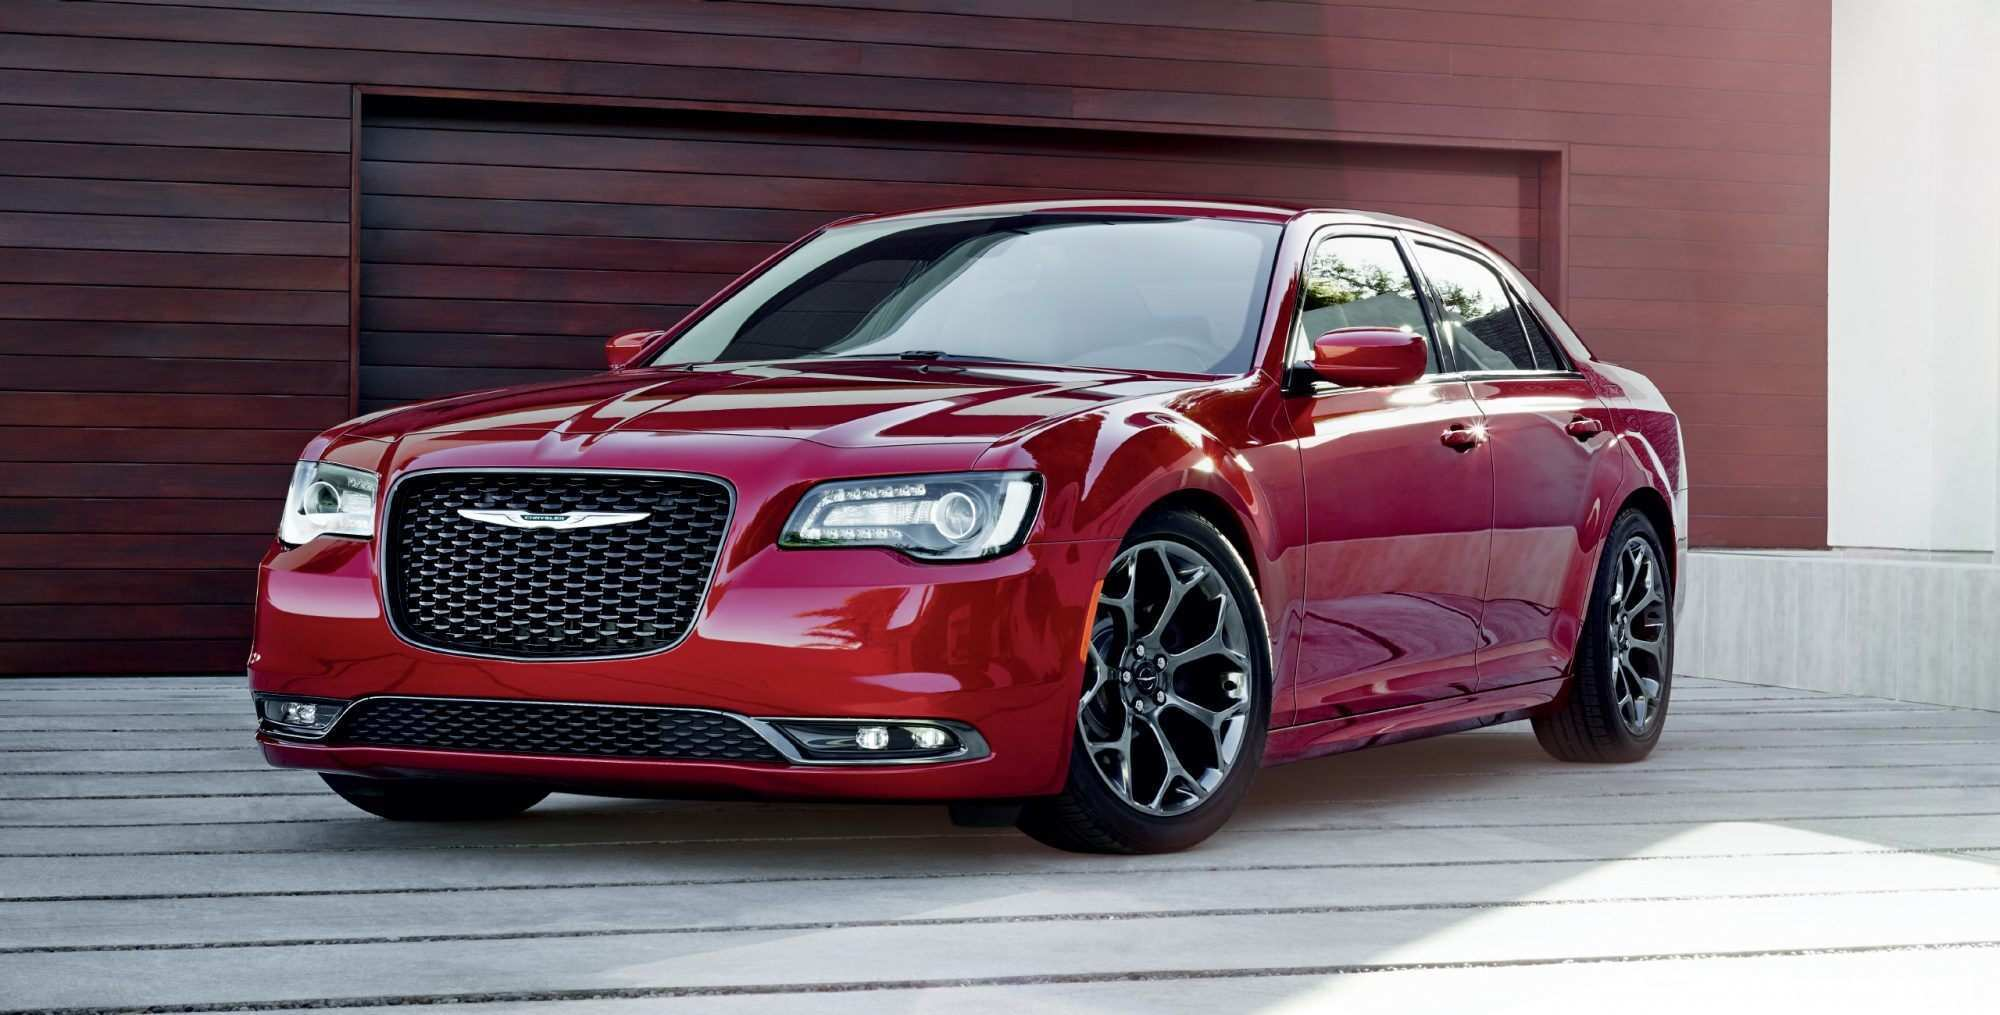 69 The 2019 Chrysler 300 Srt 8 Review